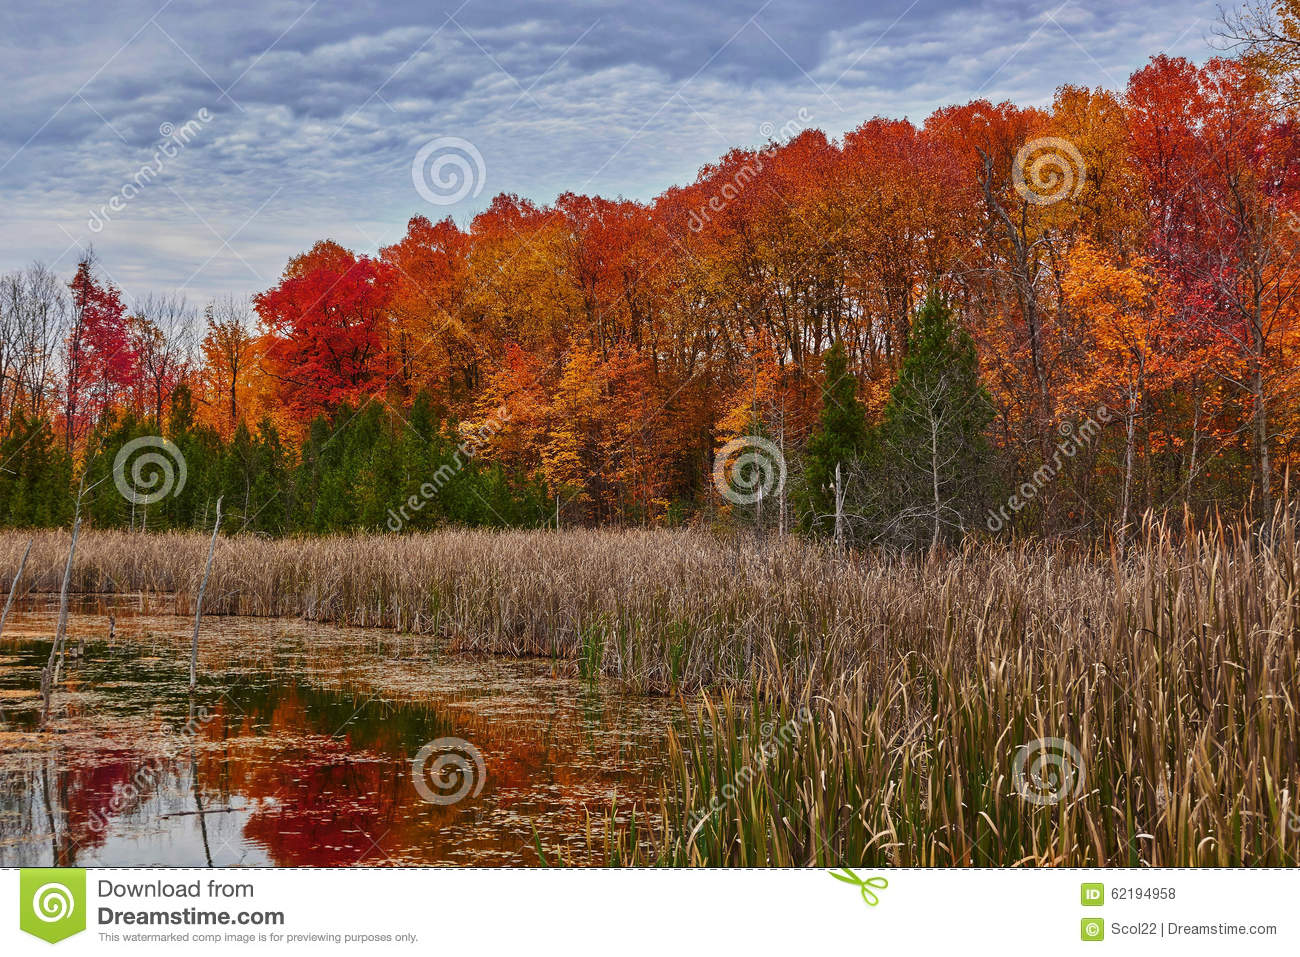 Wetland forest in fall stock photo. Image of green, color ...